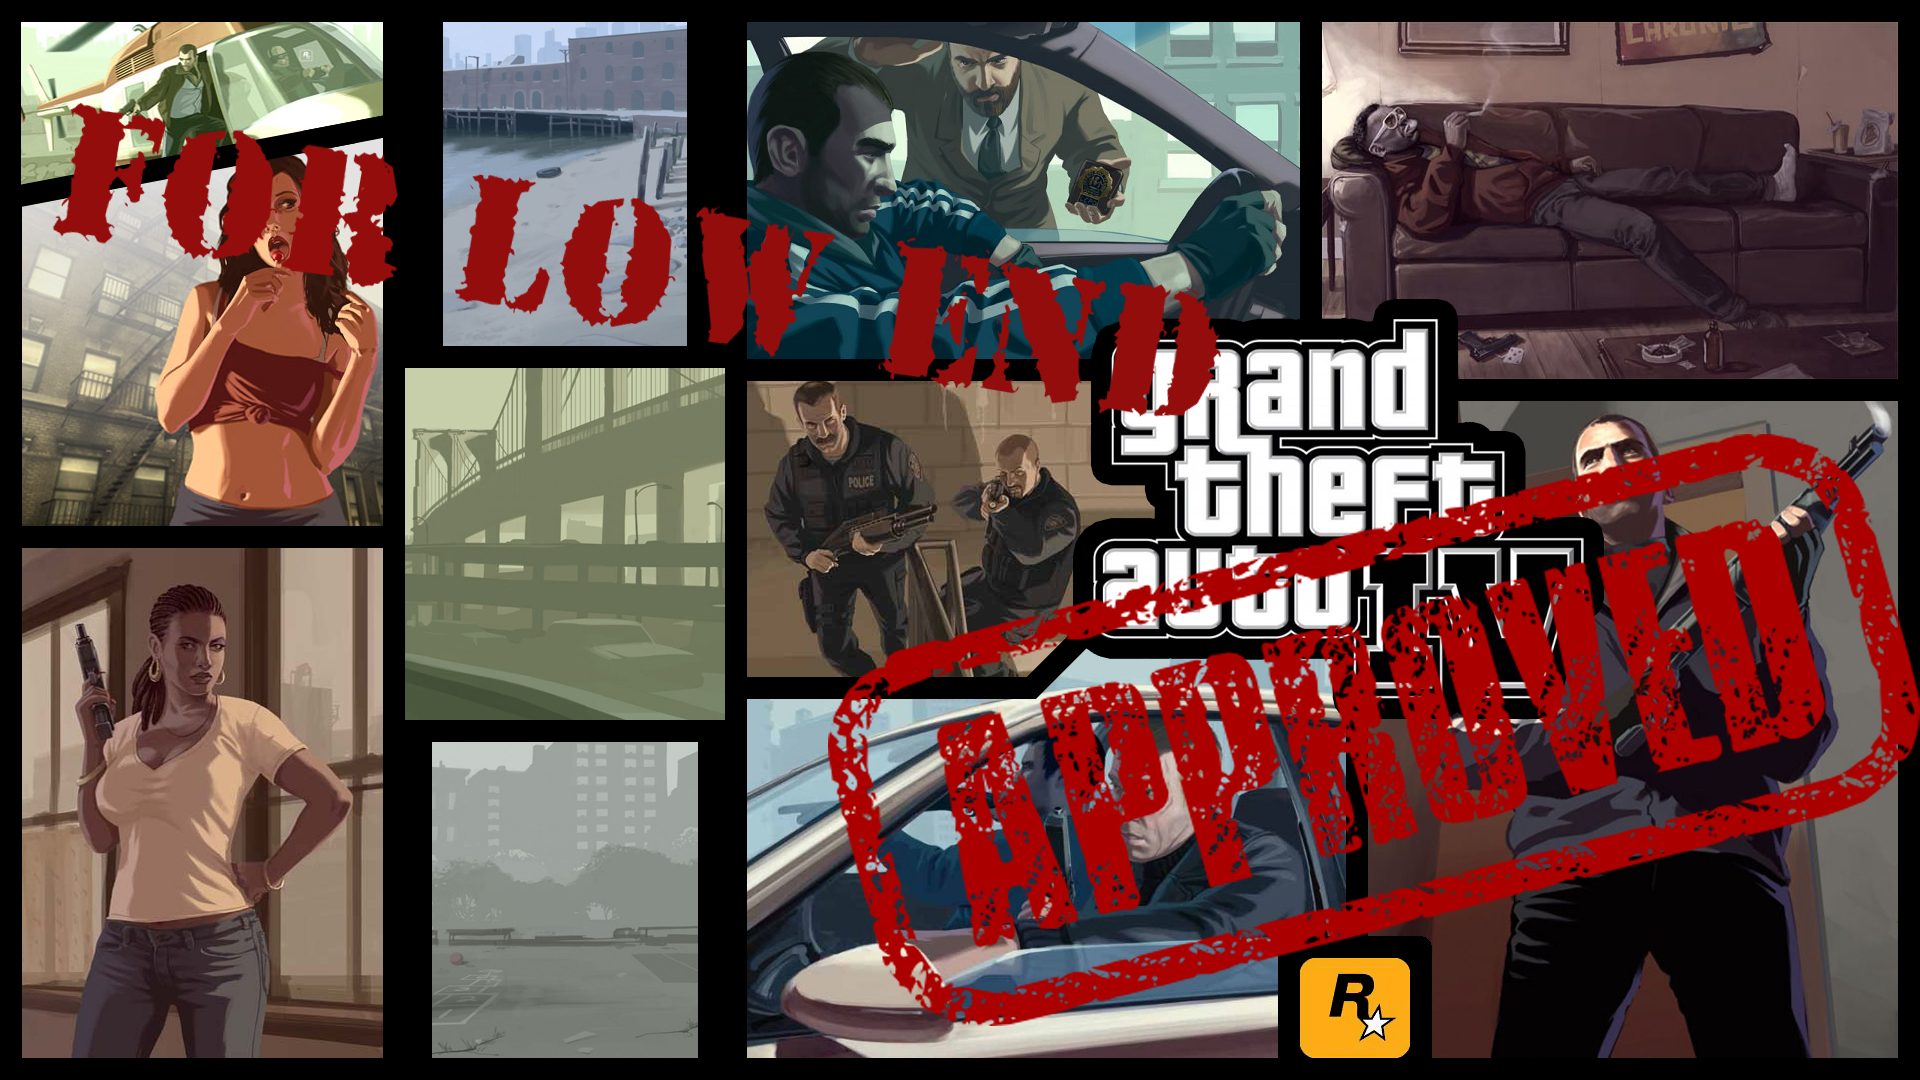 GTAIV Low End Mod for Grand Theft Auto IV - Mod DB